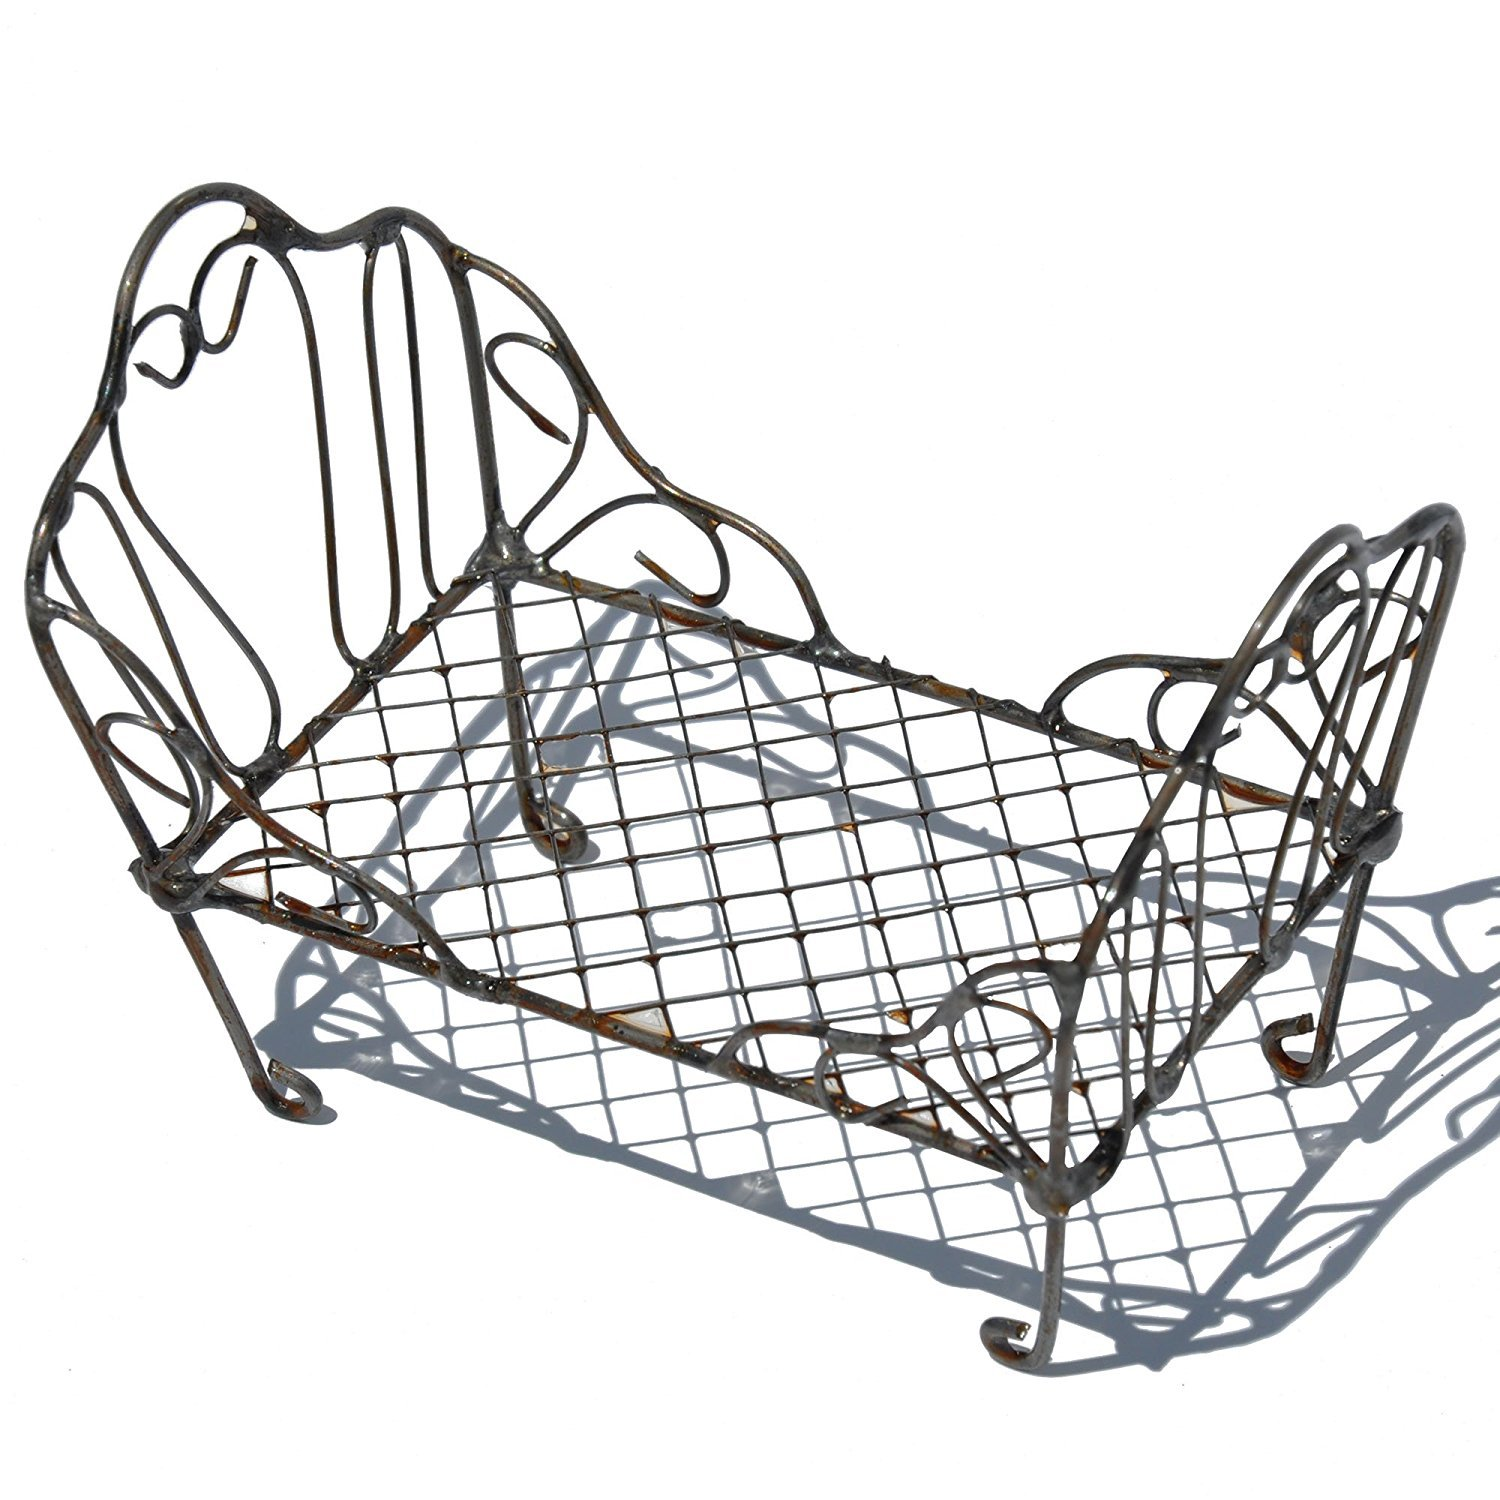 Miniature Fairy Garden Accessories - Elegant, Metal Scrolled Day Bed - Measures 4 Inches Long